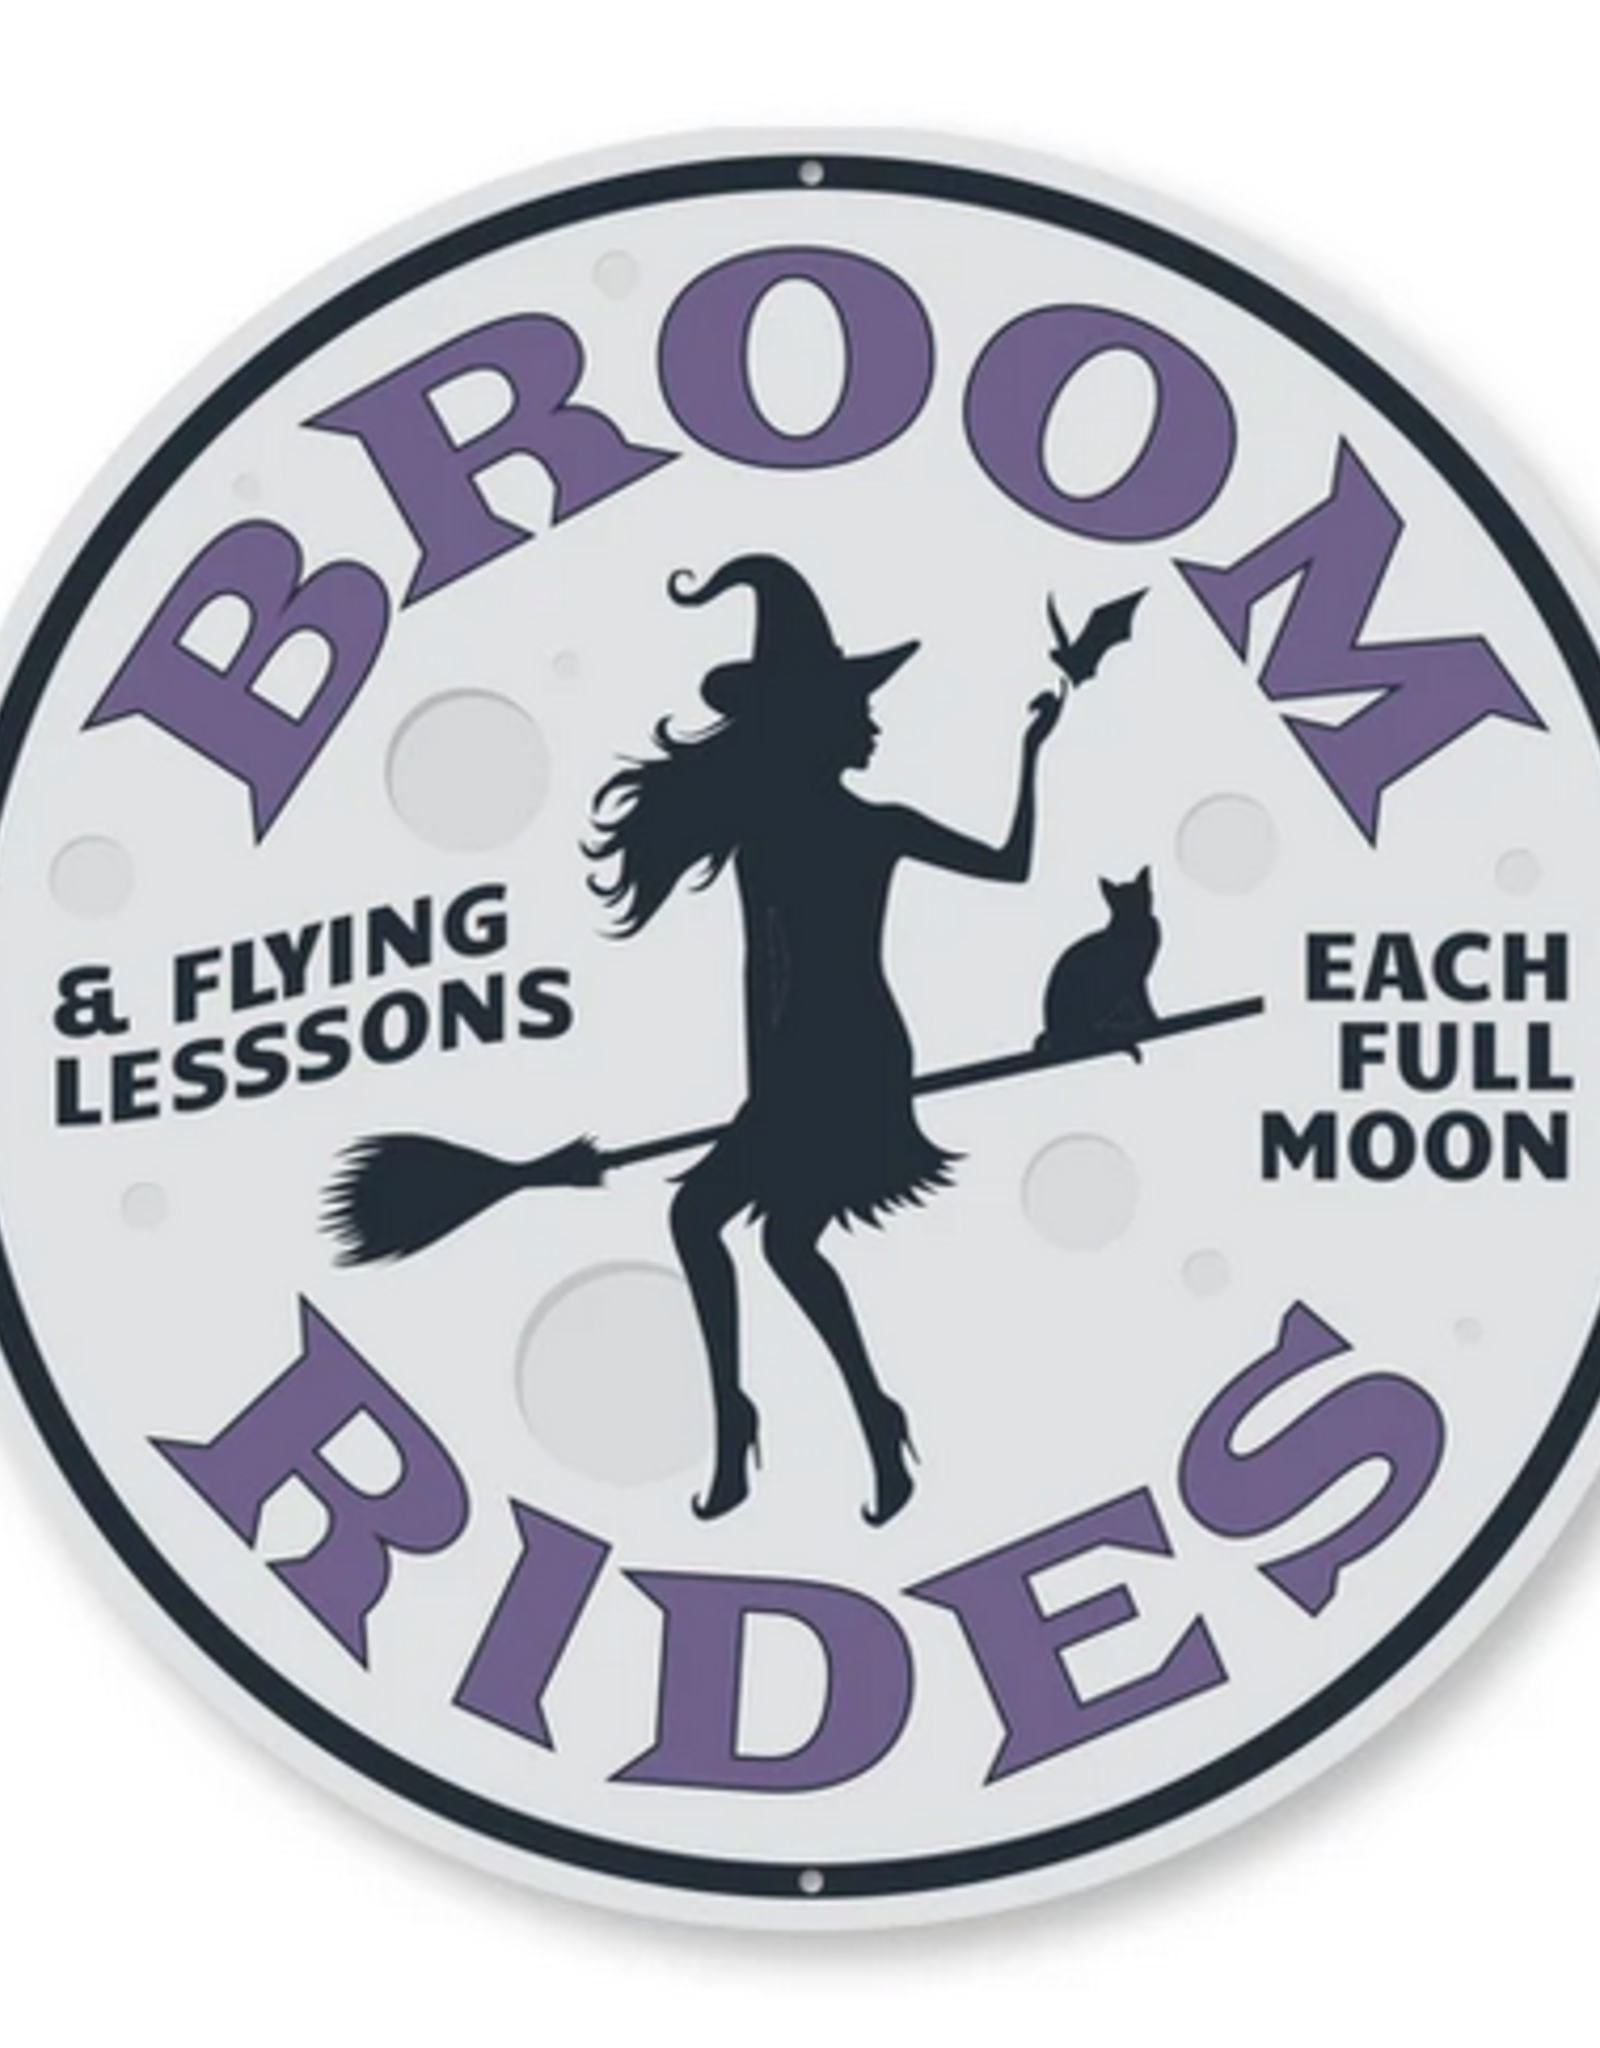 Lizton Sign Shop *Broom Rides & Flying Lesson - 12 inches